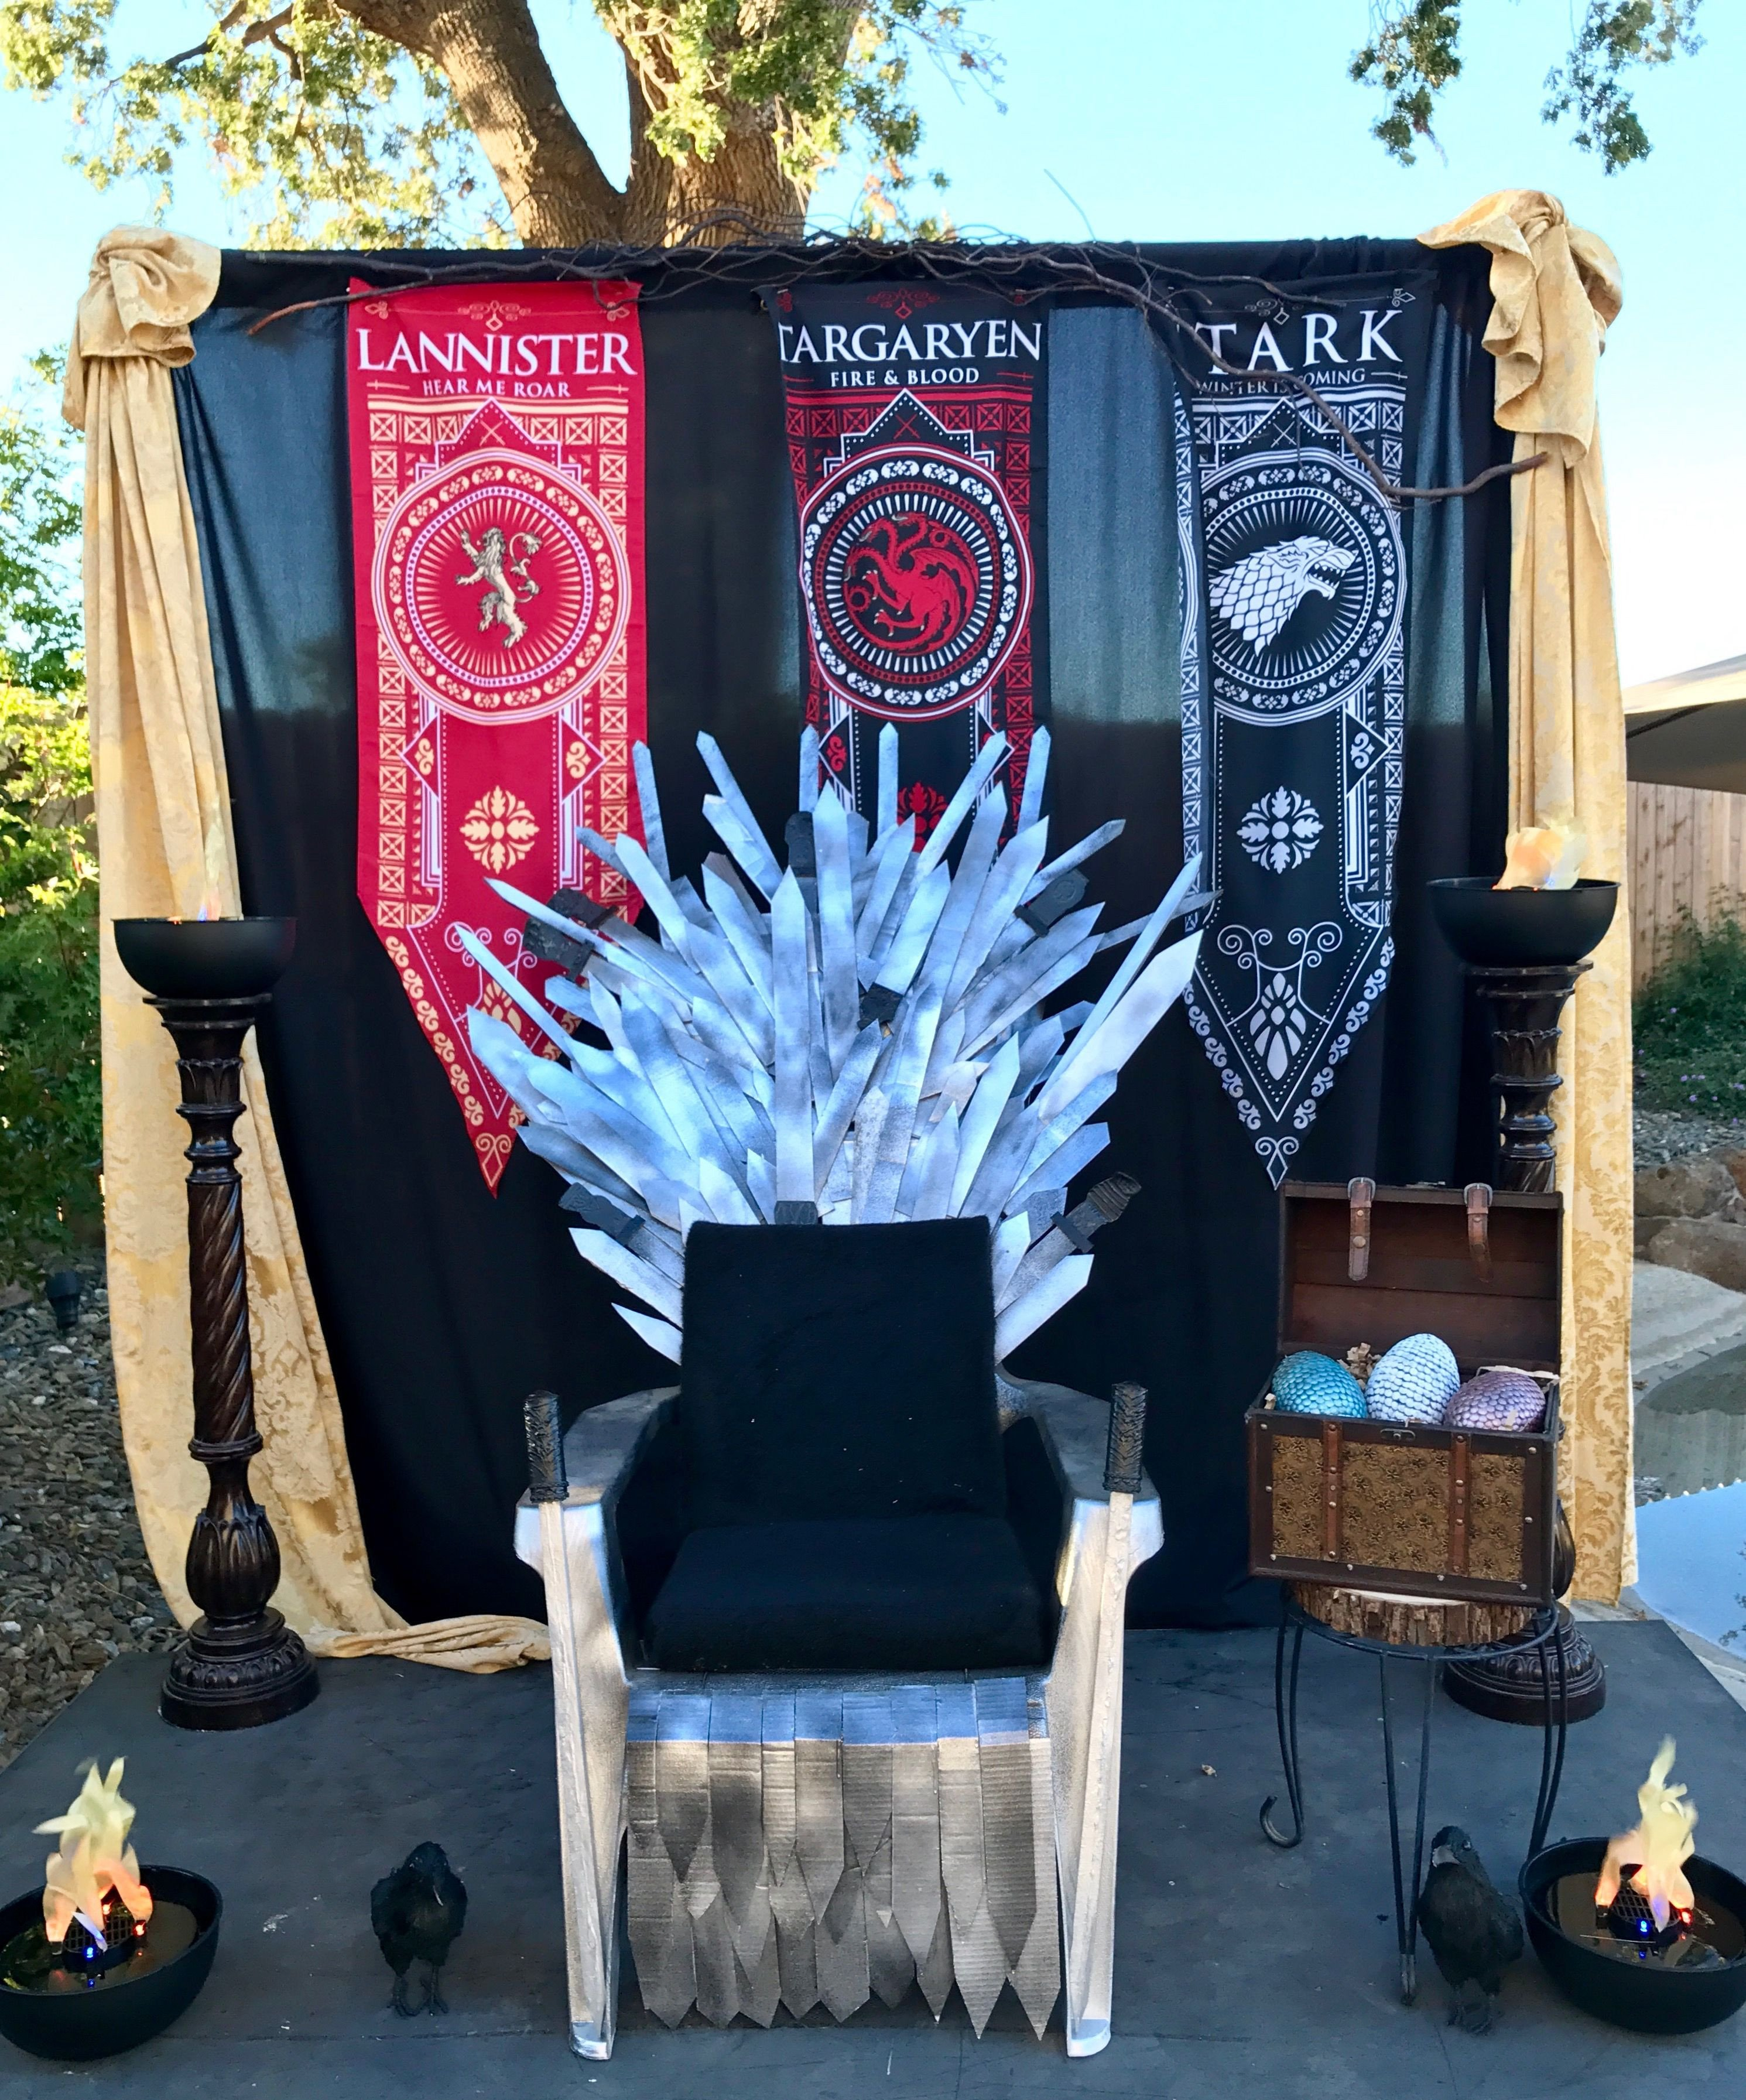 Game Of Thrones Office Decor Inspirational Game Of Thrones Party Backdrop Decor Game Of Thrones In 2019